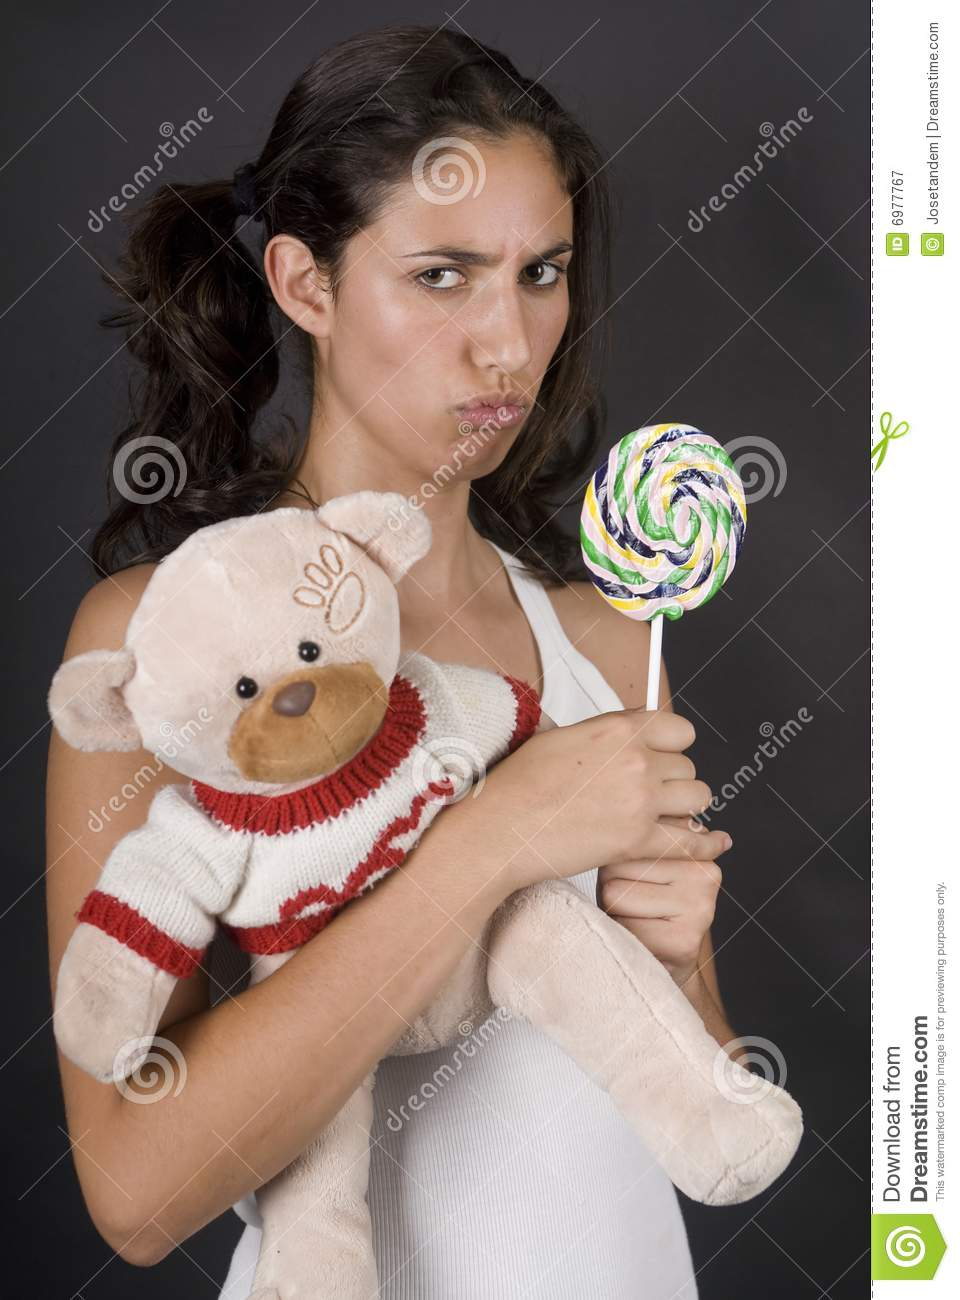 Naughty Girl Eating A Large Lolly Pop Stock Image Image Of Girl